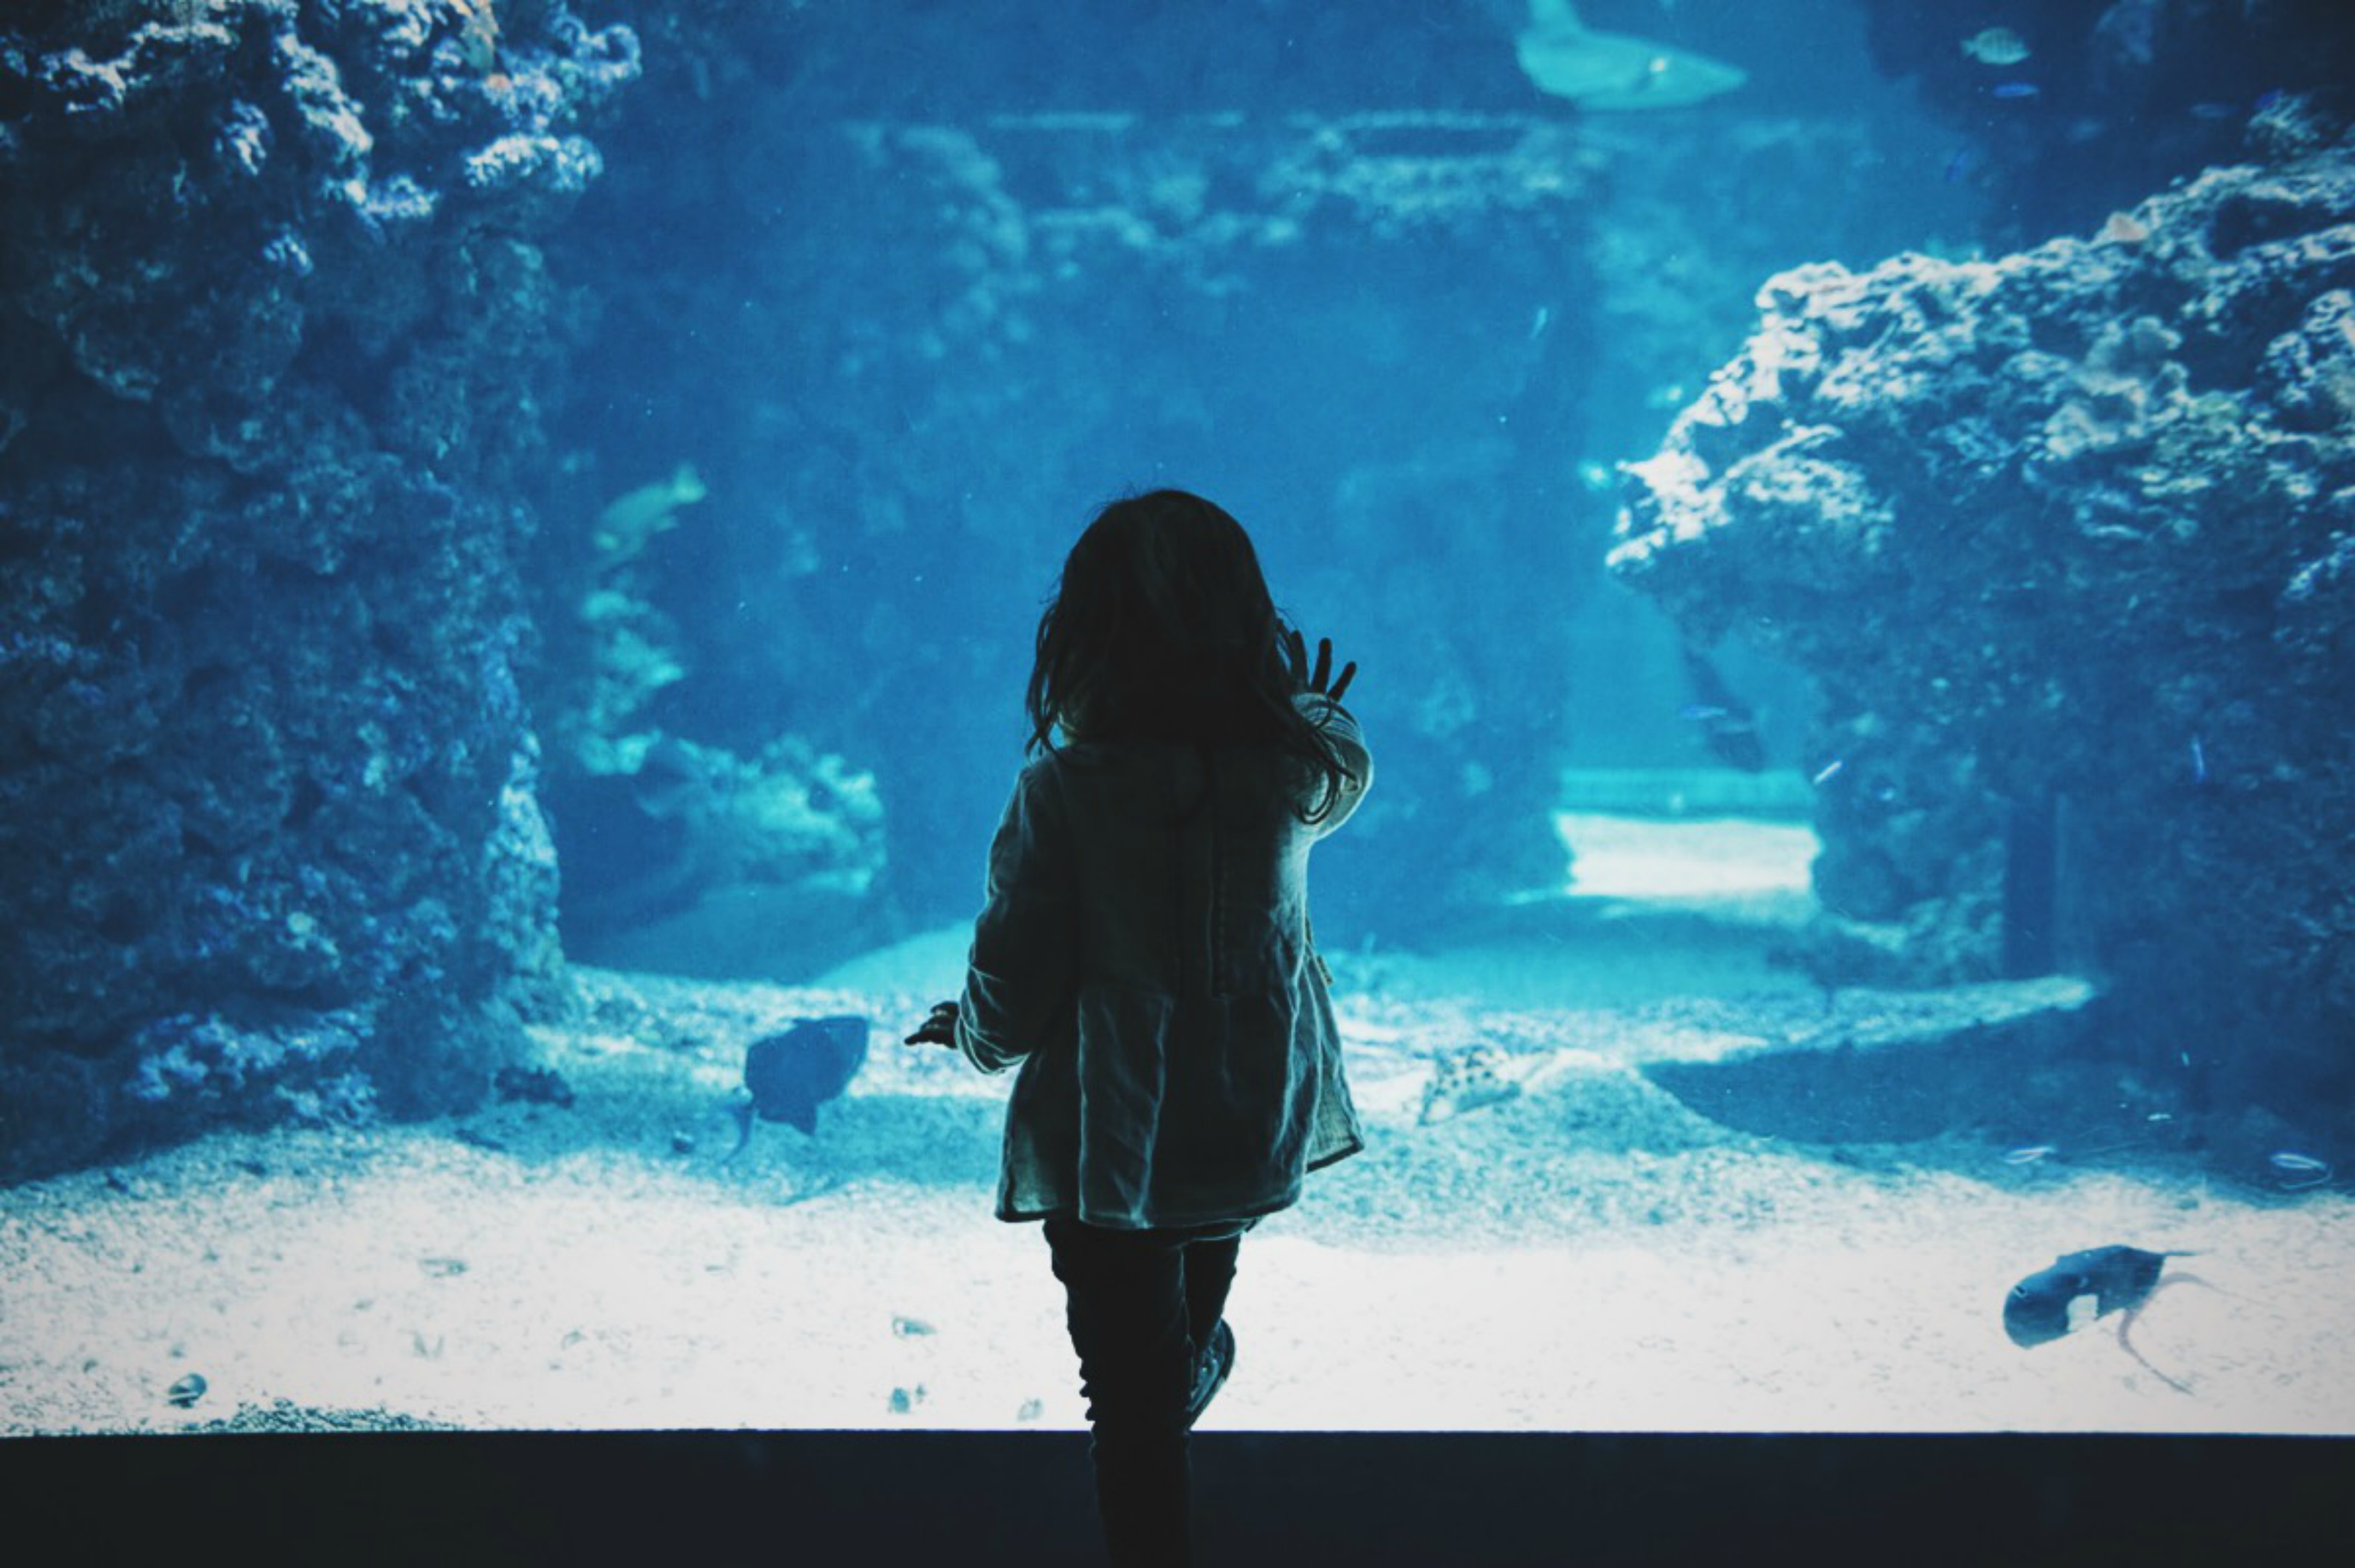 97892 Screensavers and Wallpapers Aquarium for phone. Download Dark, Miscellanea, Miscellaneous, Aquarium, Touching, Touch, Child, Back pictures for free